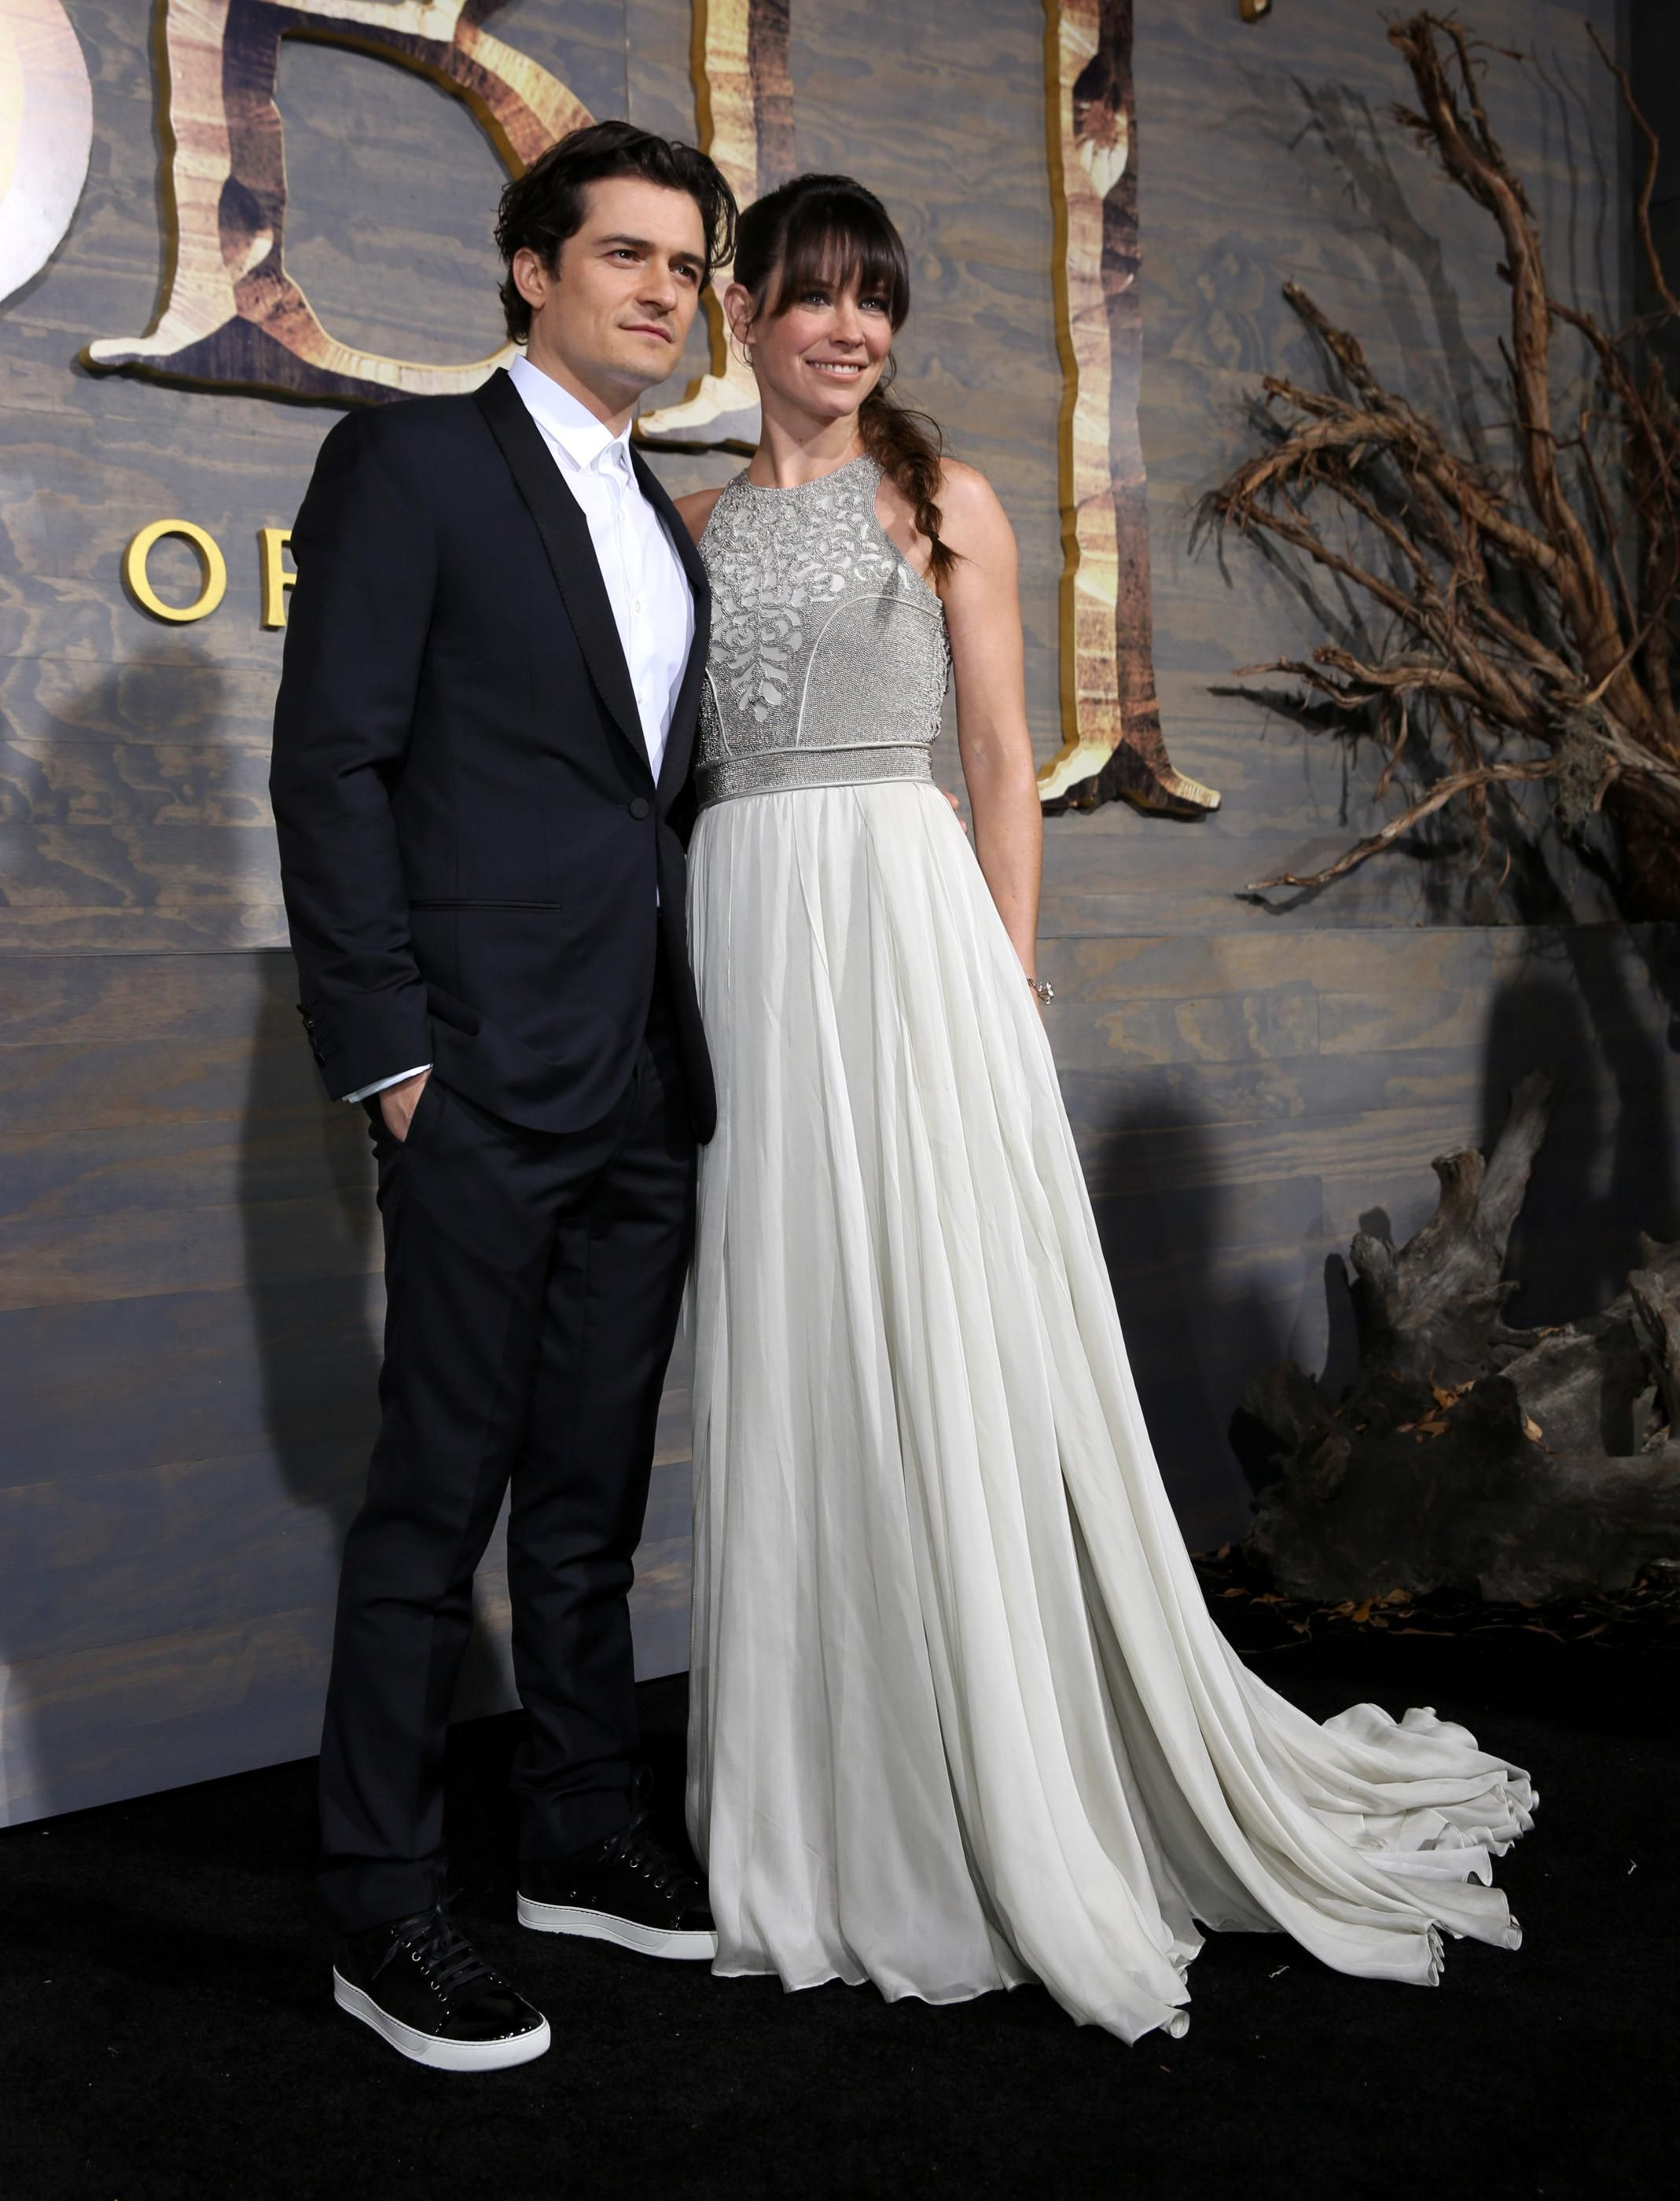 'The Hobbit: The Desolation of Smaug' World Premiere in Los Angeles (December 2, 2013)